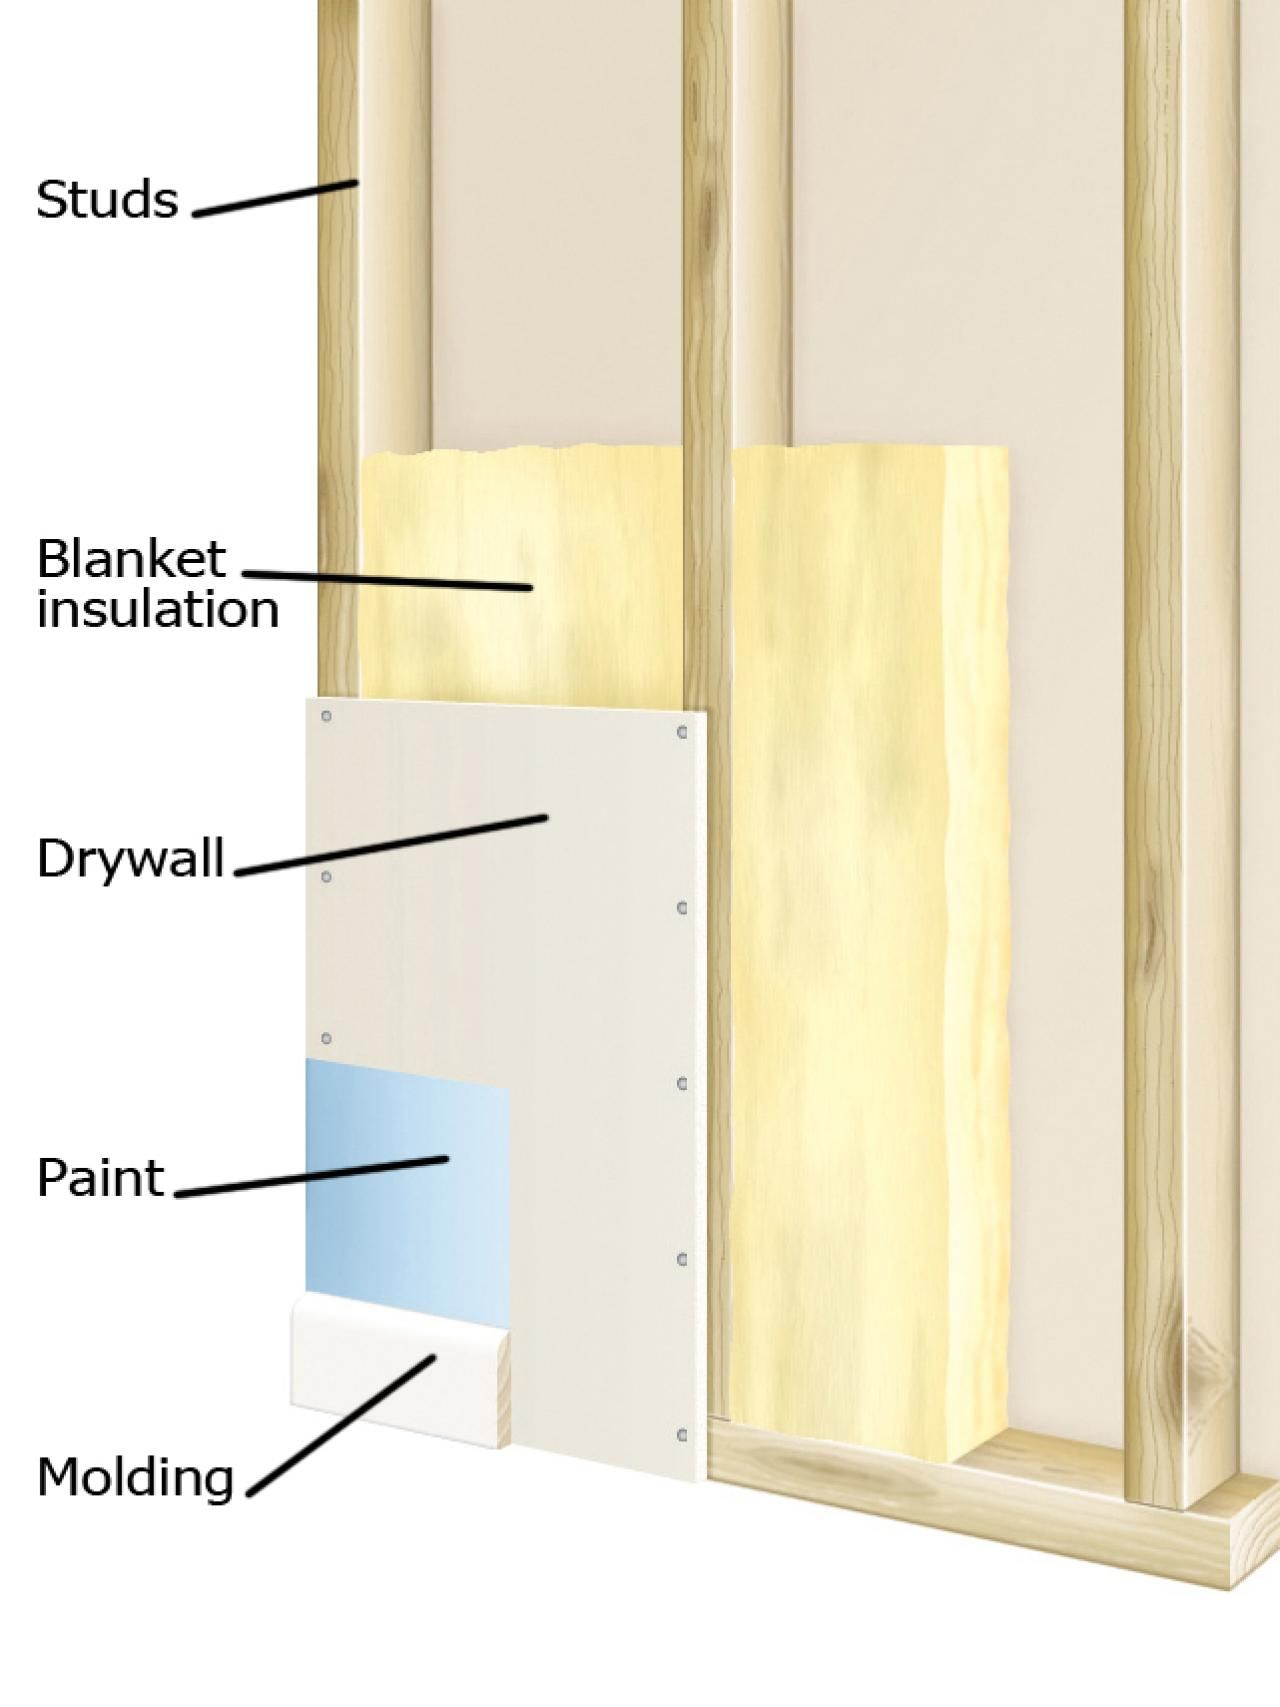 Diynetwork Offers Tips On Soundproofing Walls To Reduce Noise Pollution In Your Home